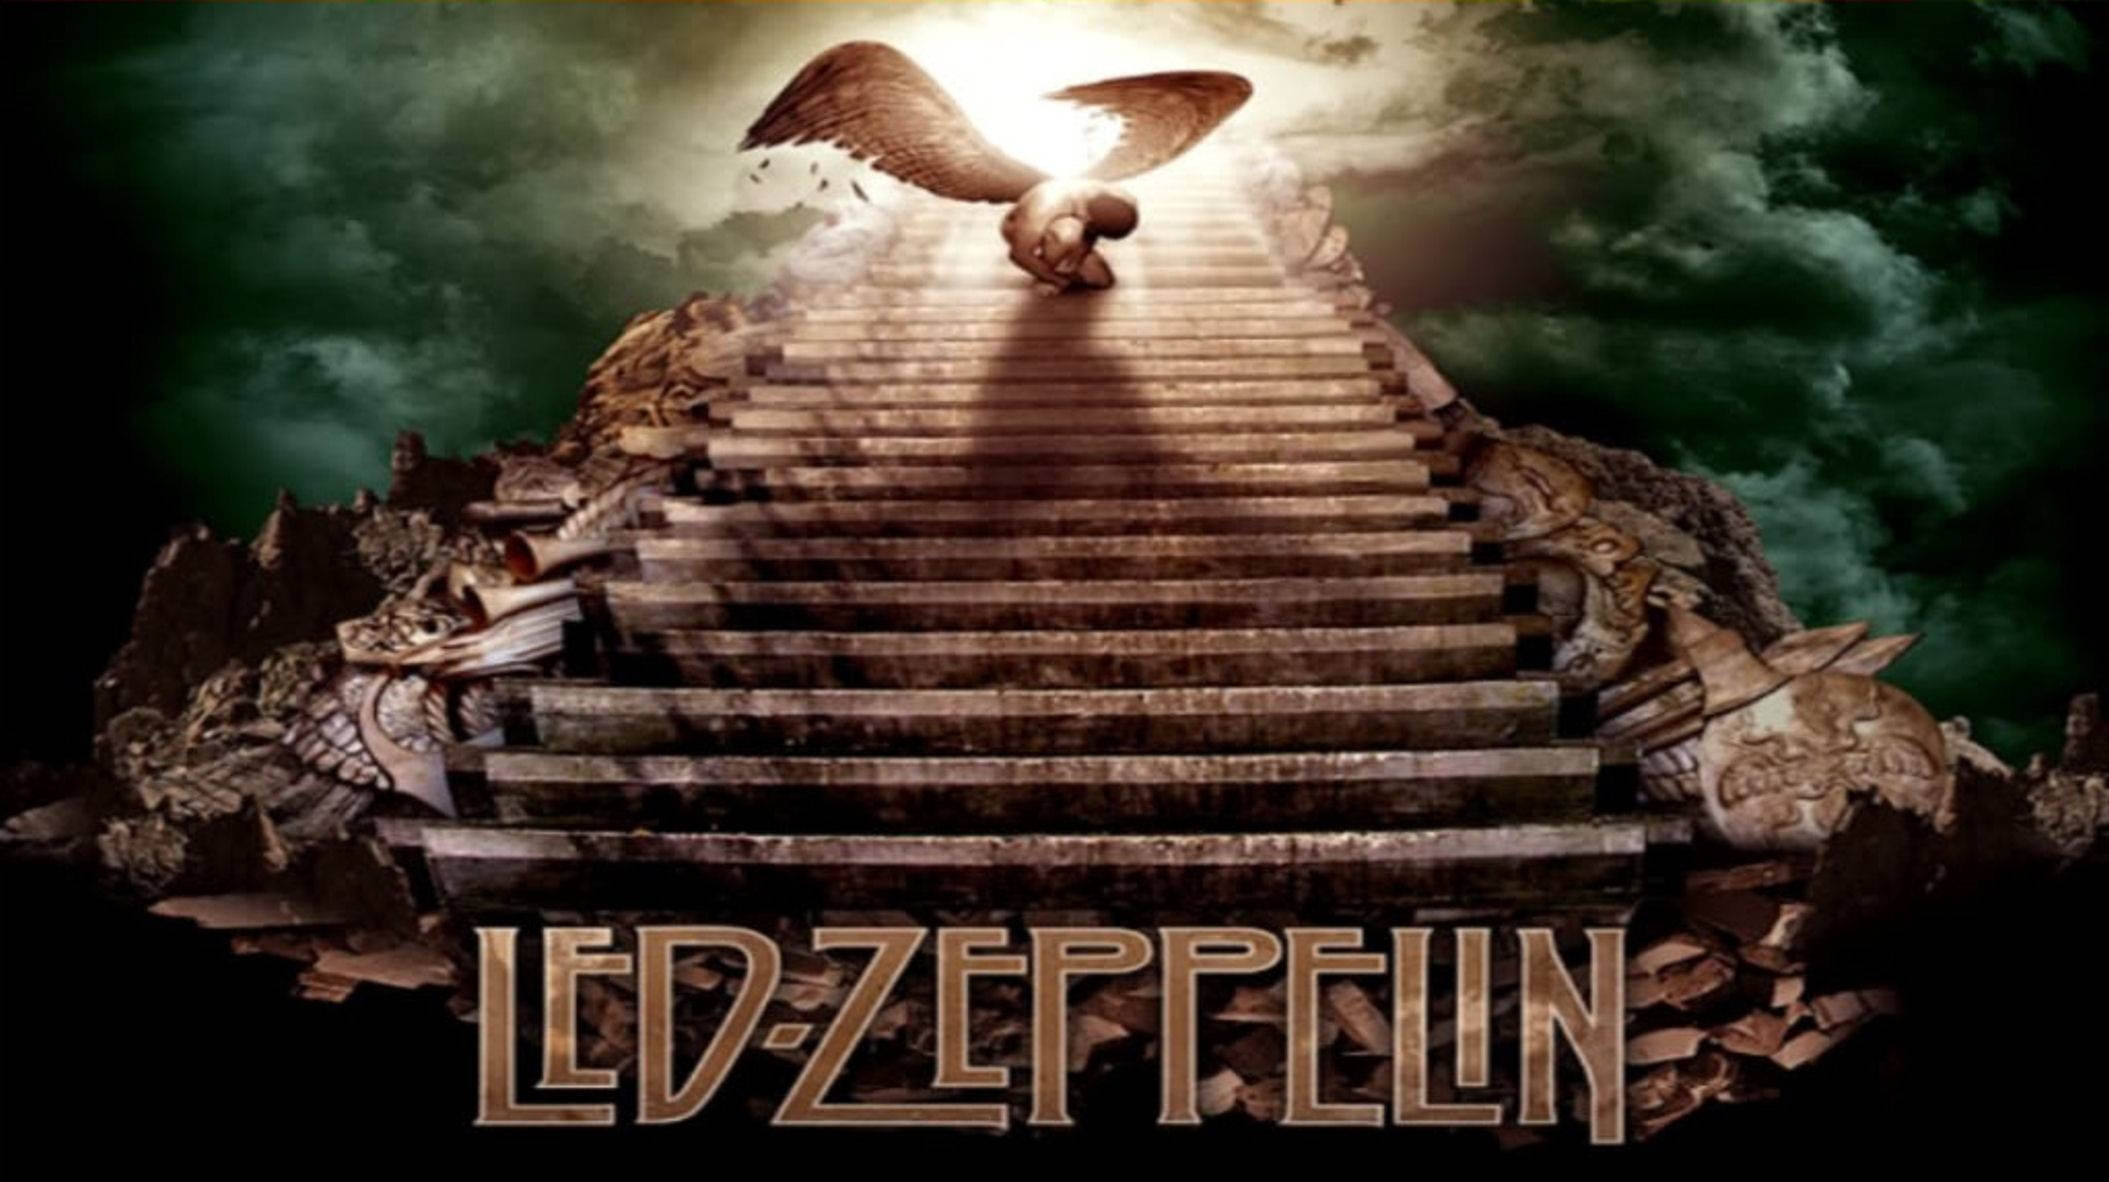 48 Led Zeppelin Hd Wallpapers | Backgrounds – Wallpaper Abyss Intended For 2018 Led Zeppelin 3D Wall Art (Gallery 12 of 20)